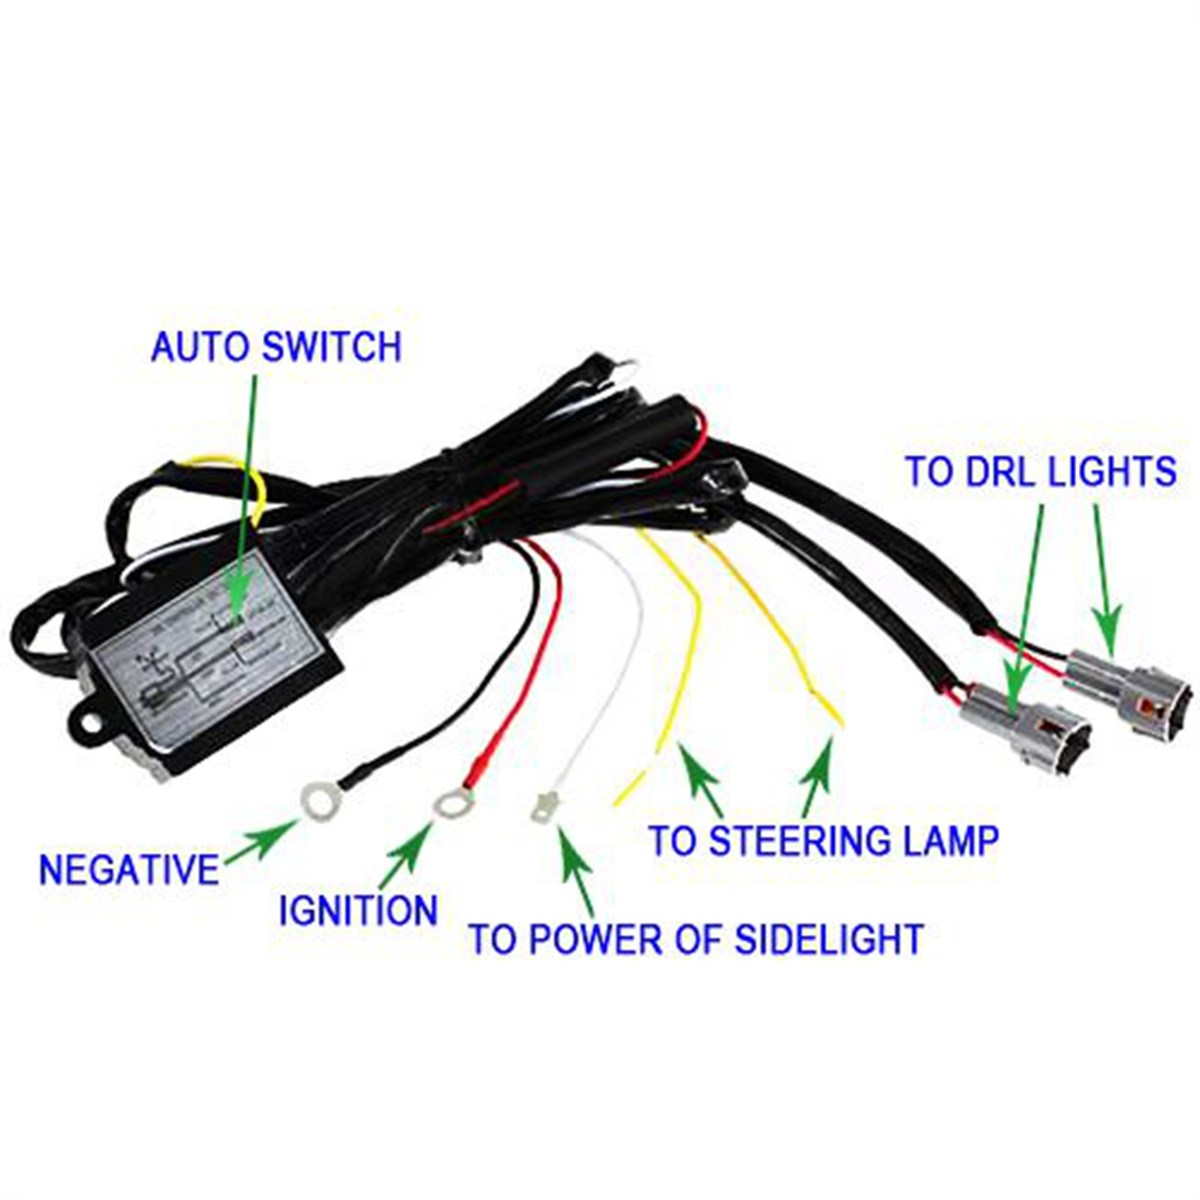 Drl Led Daytime Running Light Relay Harness Automatic On Off Control Switch 12v Warning Lights In Car Switches Relays From Automobiles Motorcycles On